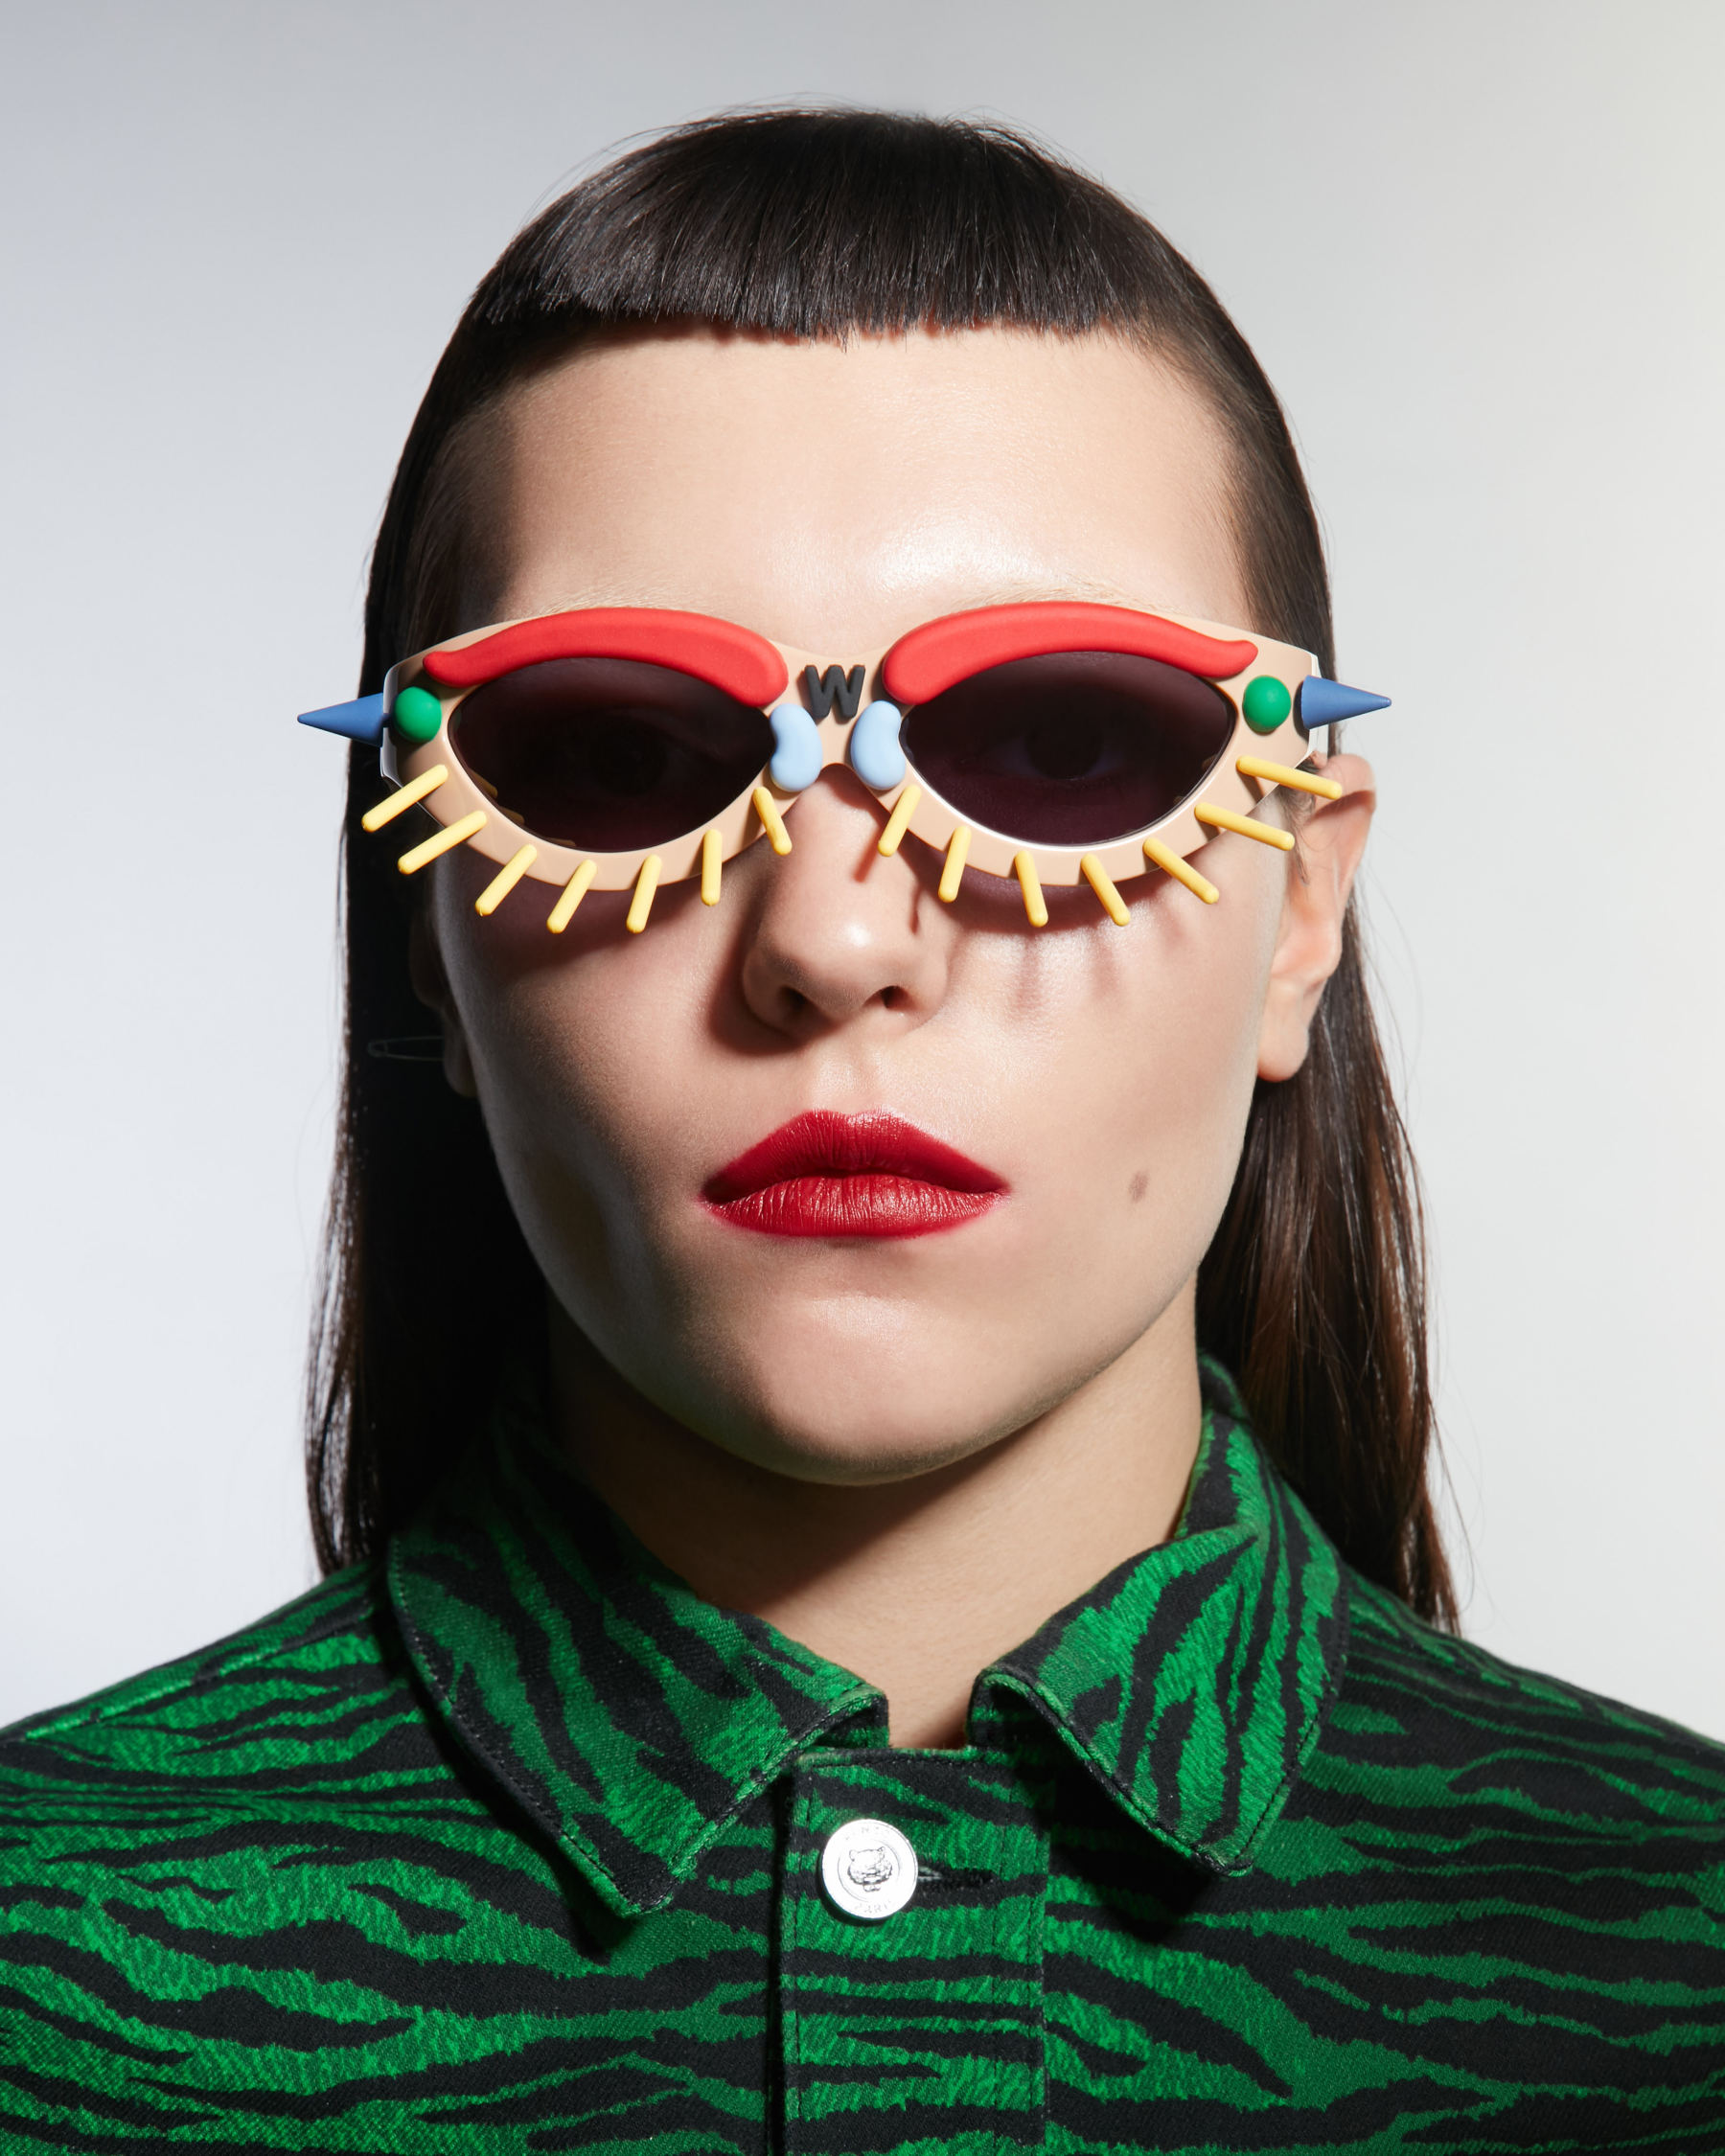 FAKBYFAK x Walter Van Beirendonck  Toy Glasses Model 1. Light brown with coloured pins Code: 09/01/03